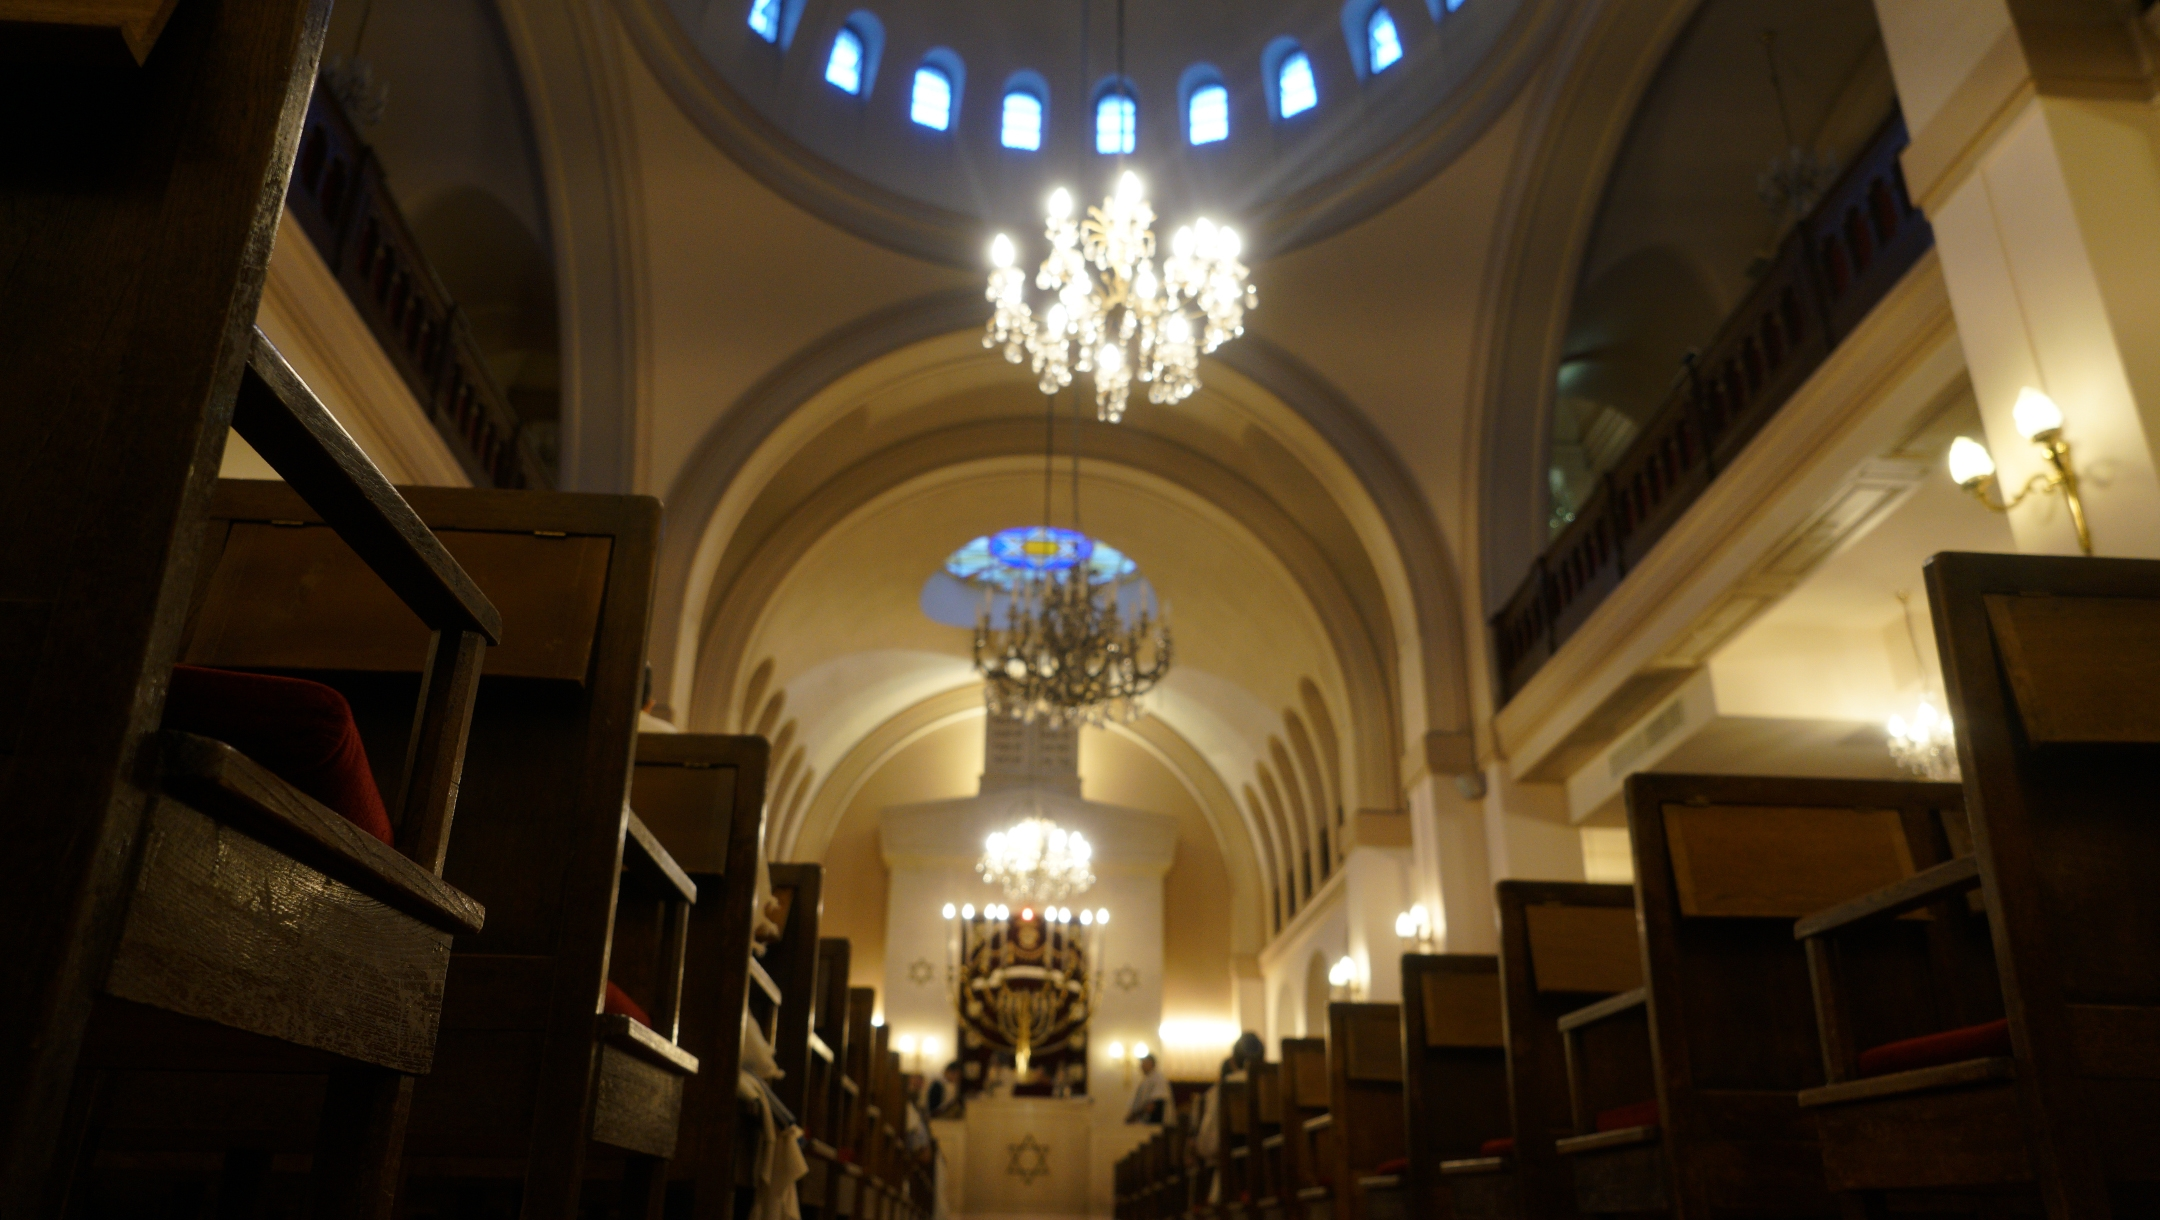 March 10 was the last time before the COVID-19 pandemic that congregants were able to worship at the synagogue of Neuilly-sur-Seine, France, pictured here in on Dec. 11, 2017. (Cnaan Liphshiz)